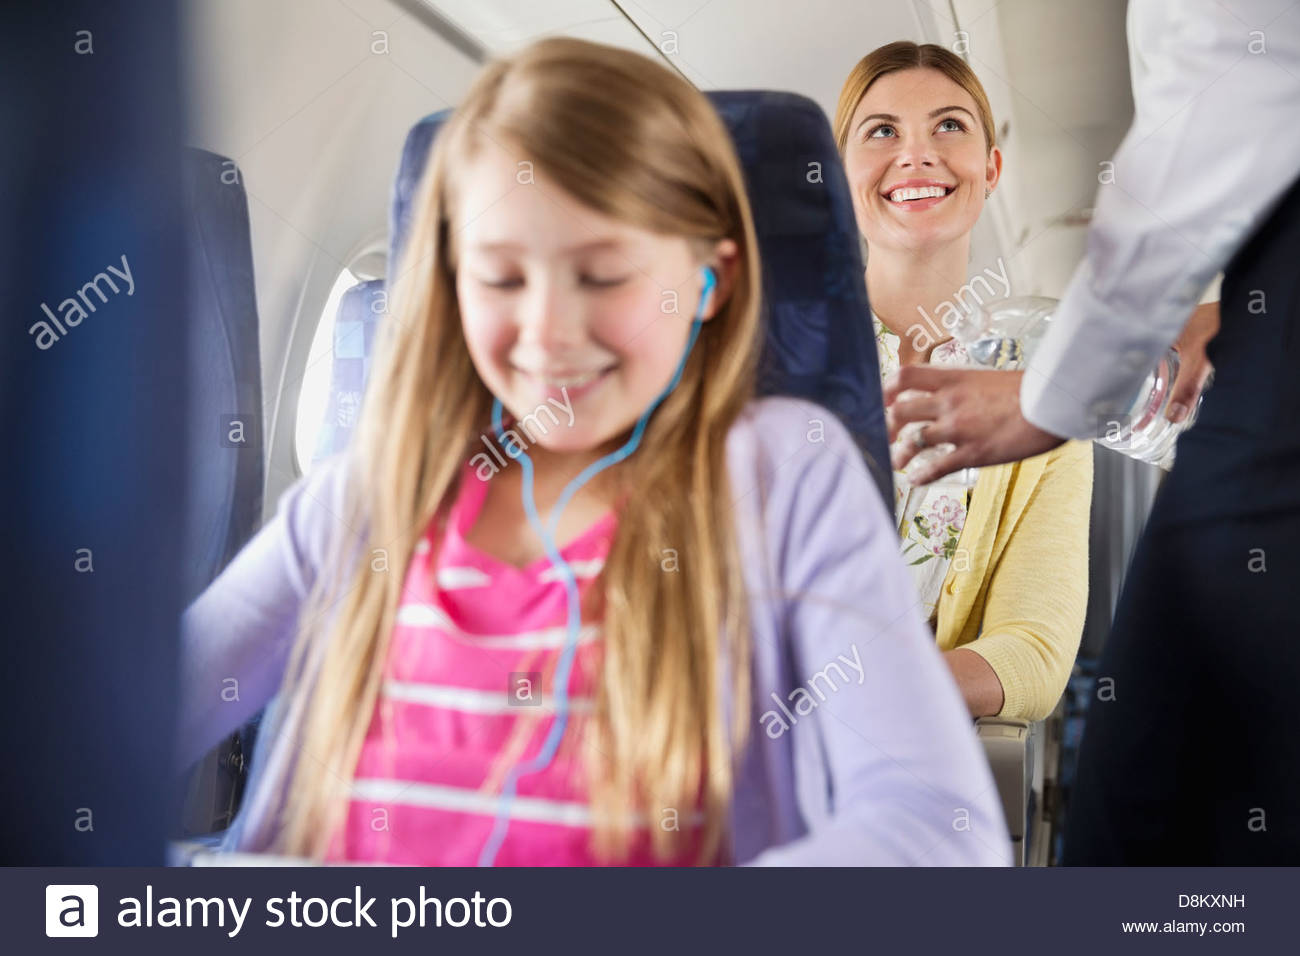 Flight attendant serving water to passenger in airplane - Stock Image